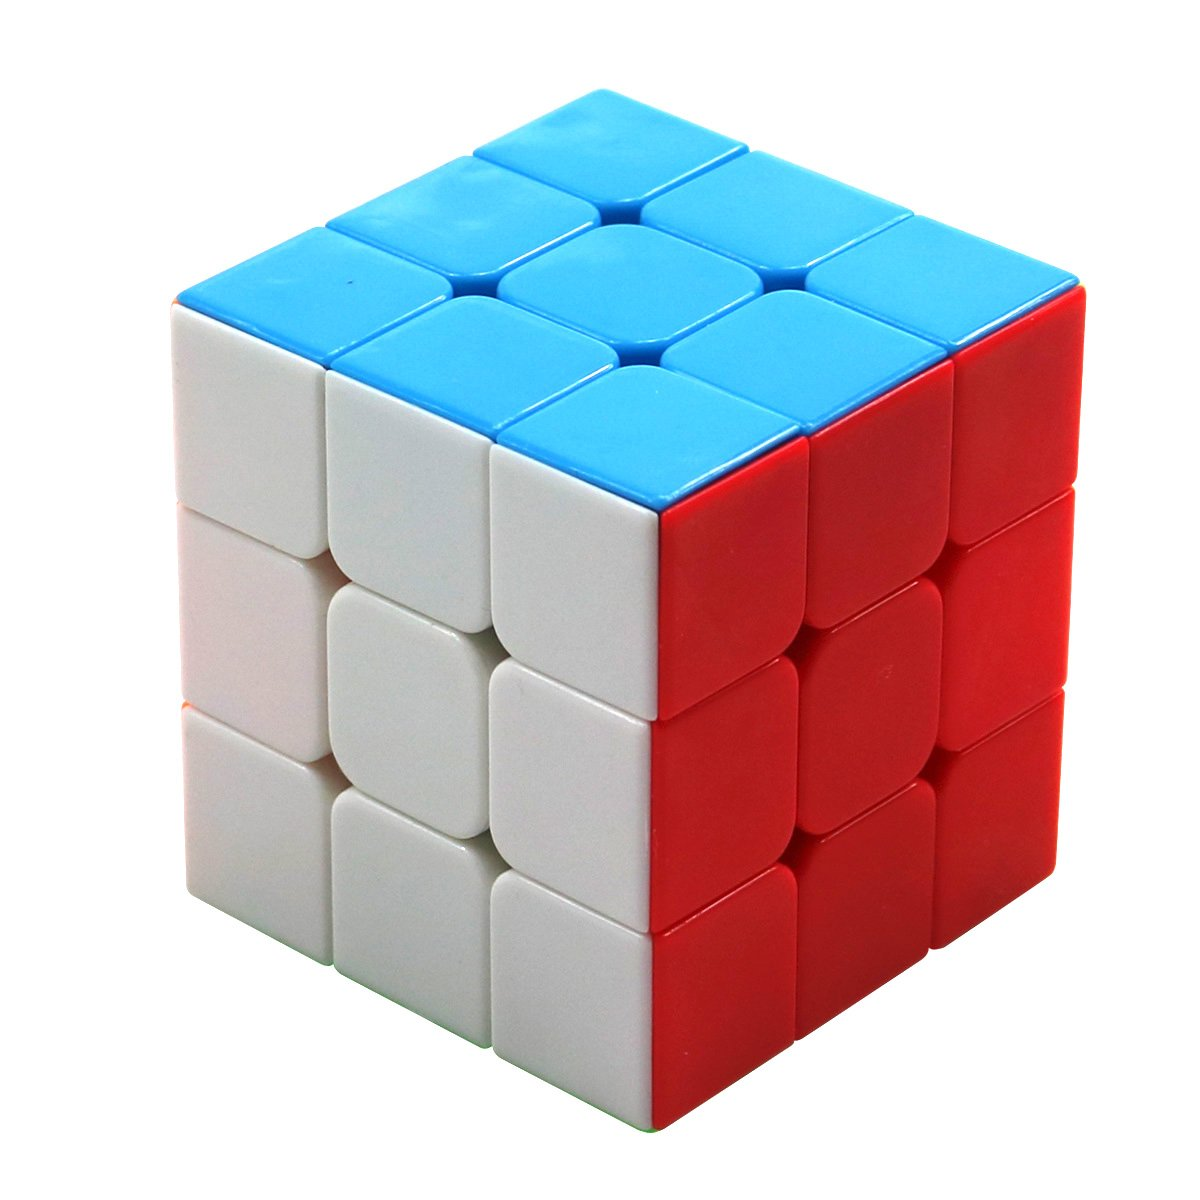 FC MXBB Magic Cube Speed Puzzle 3x3 Stickerless Cube Twist Brain Teasers Educational Toy 56mm